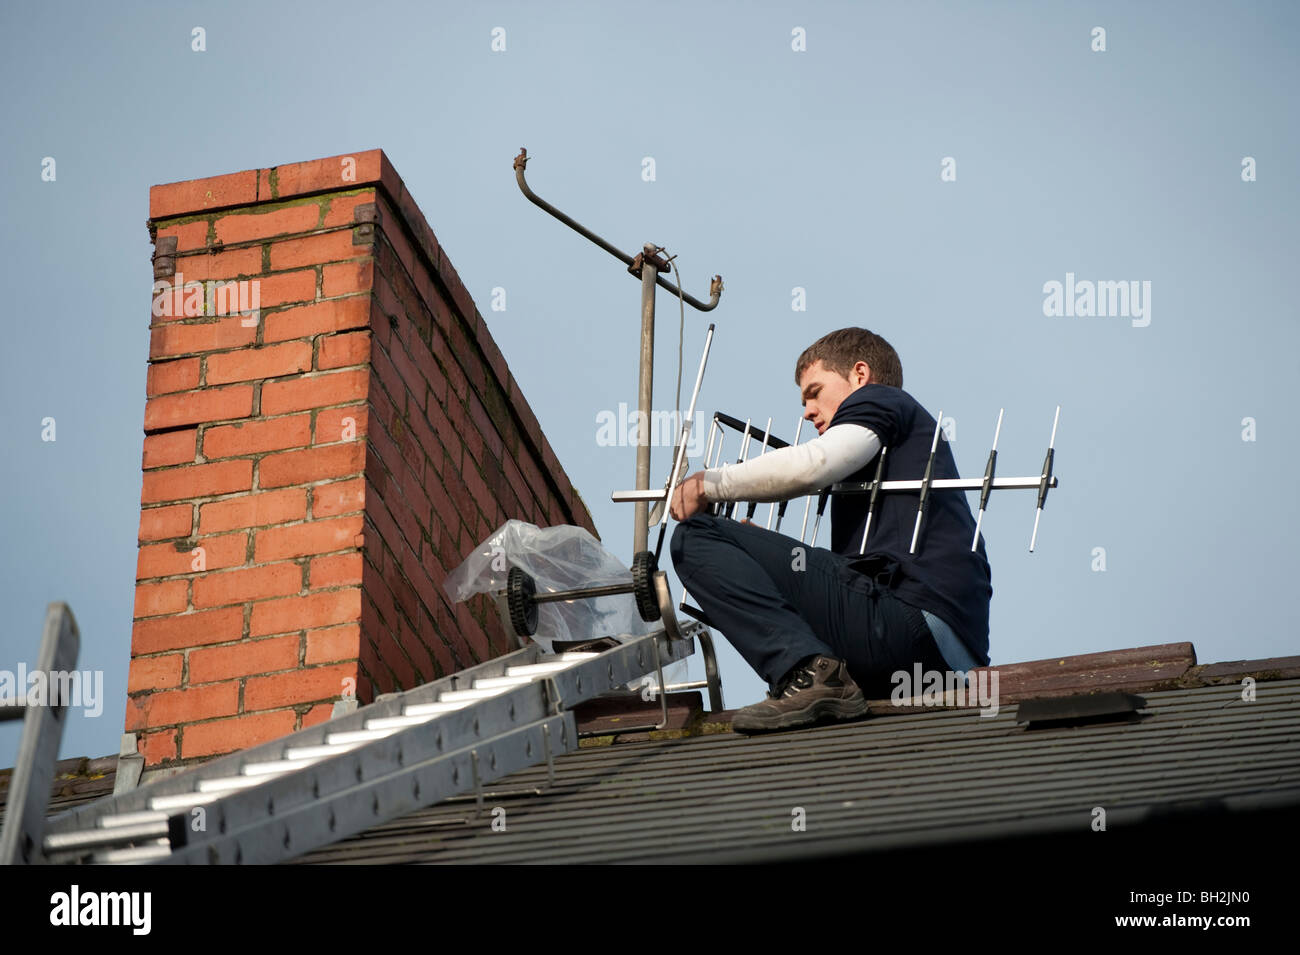 A young television engineer installing new digital tv compatible aerial on to a chimney of a house - Stock Image